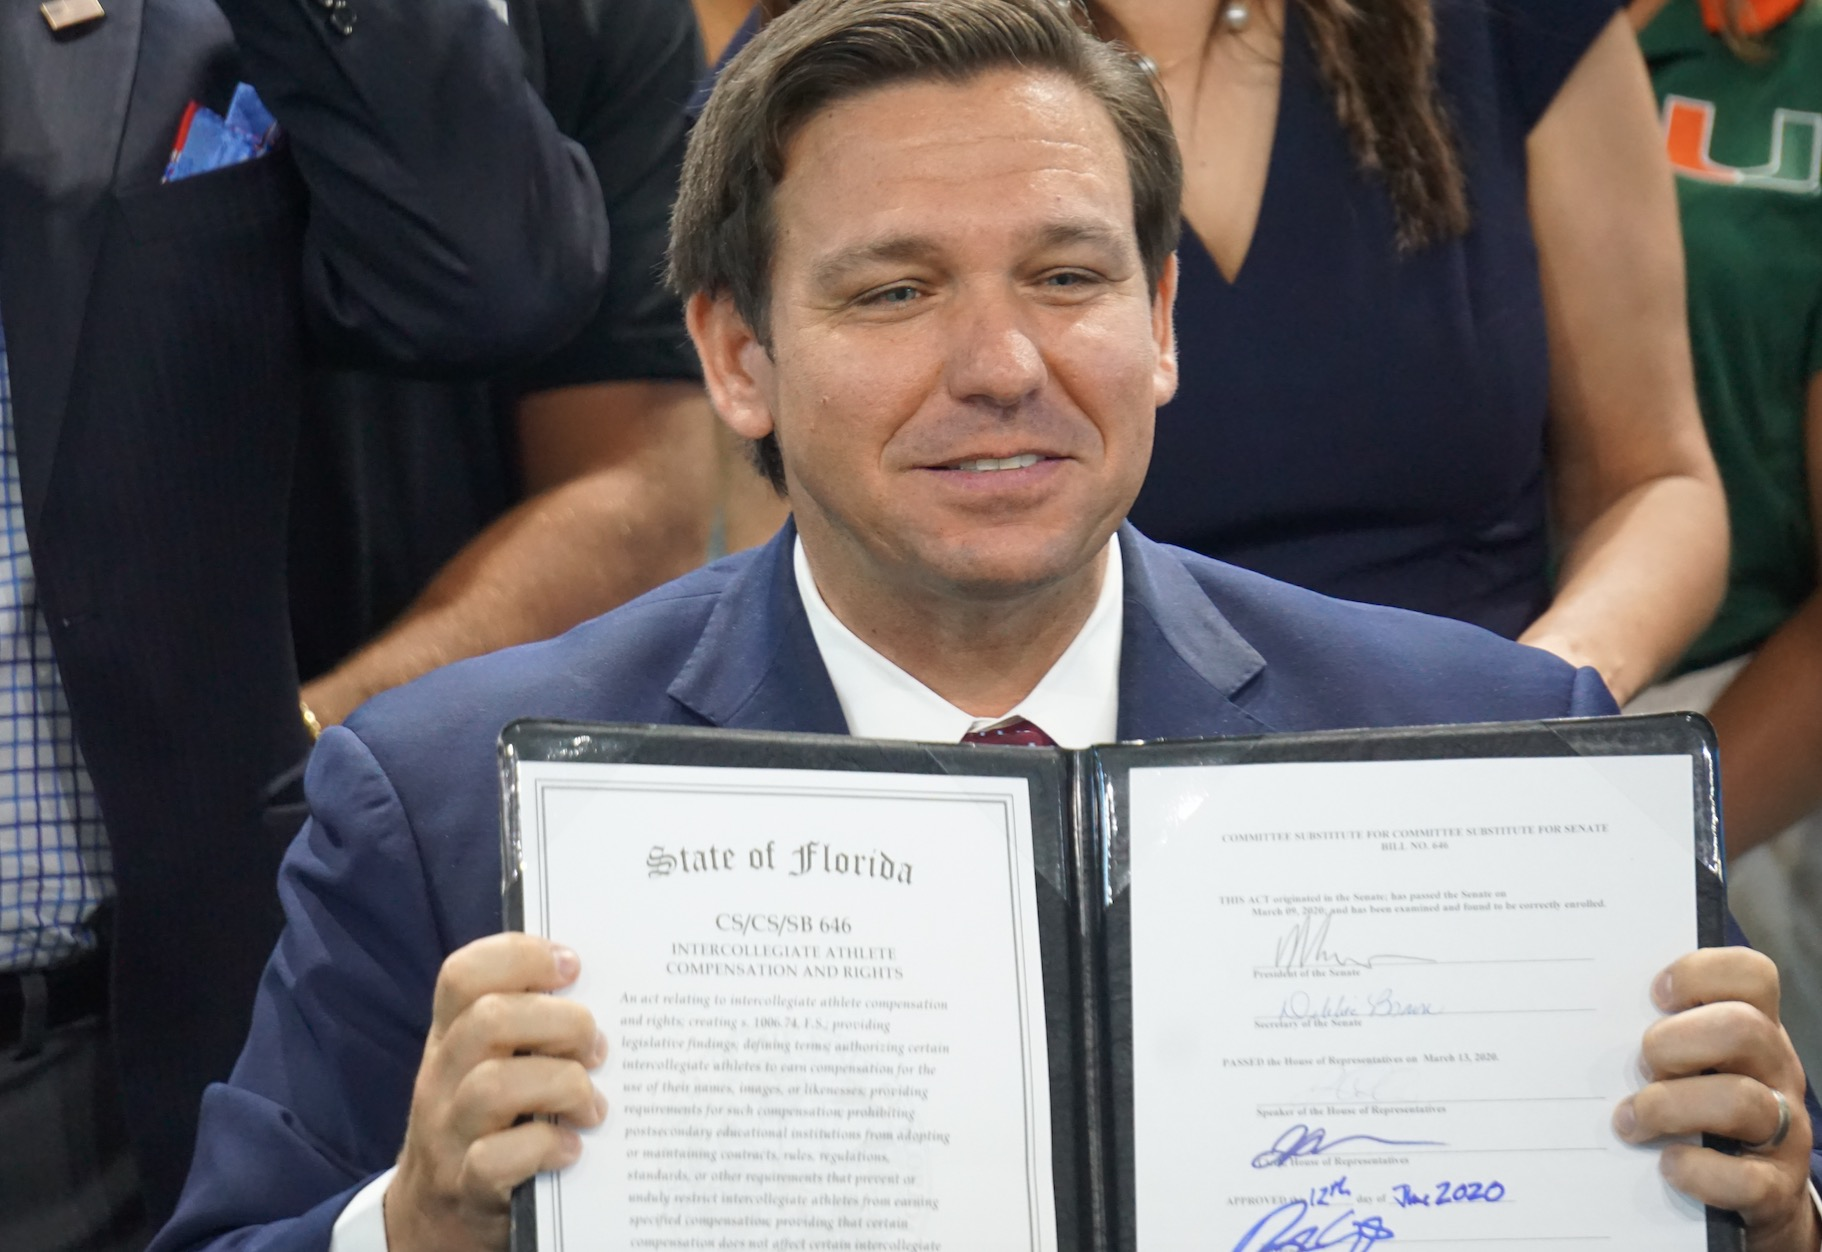 JUICE — Florida Politics' Juicy Read — 4.28.2021 — DeSantis Losing His GOP Edge? — Border Crisis 'Self-Inflicted Disaster'— More…